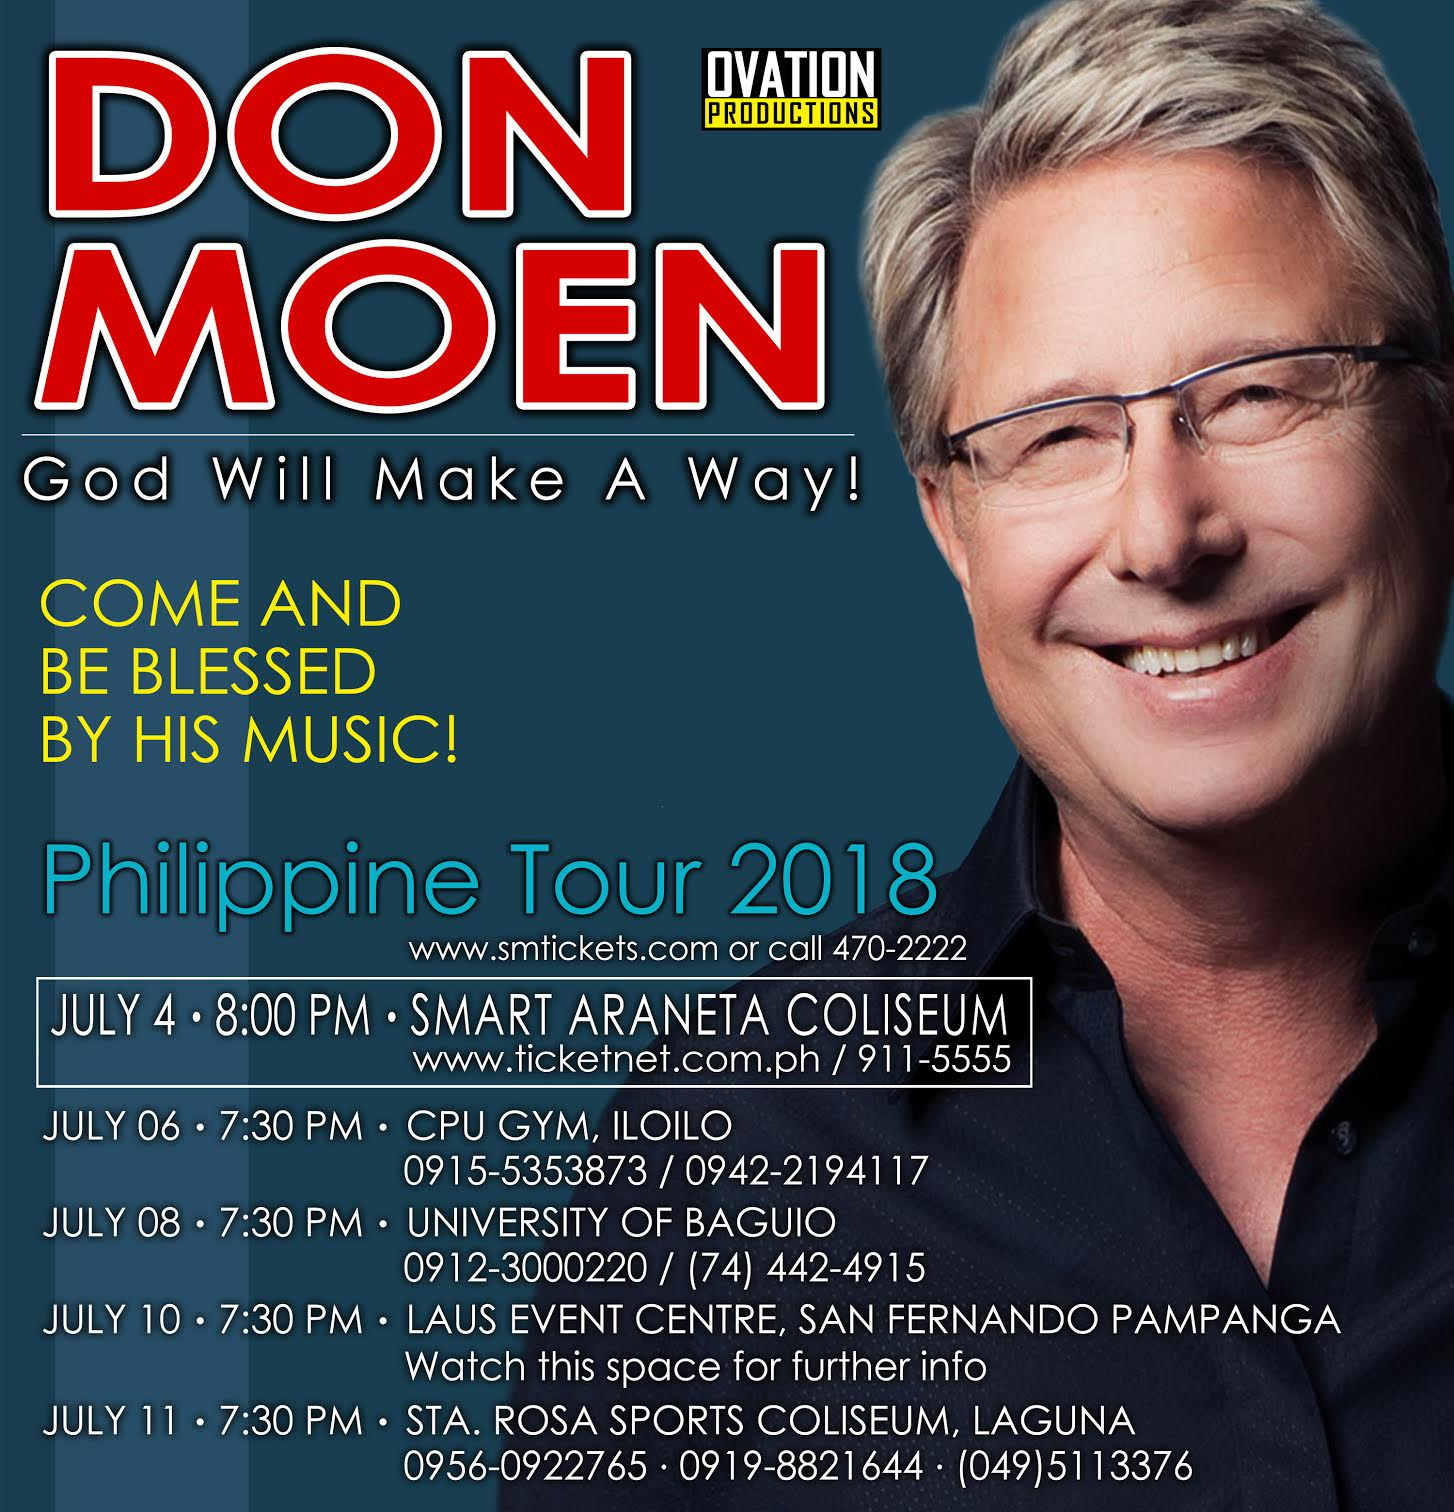 Don Moen Philippine Tour 2018 Live in Laguna